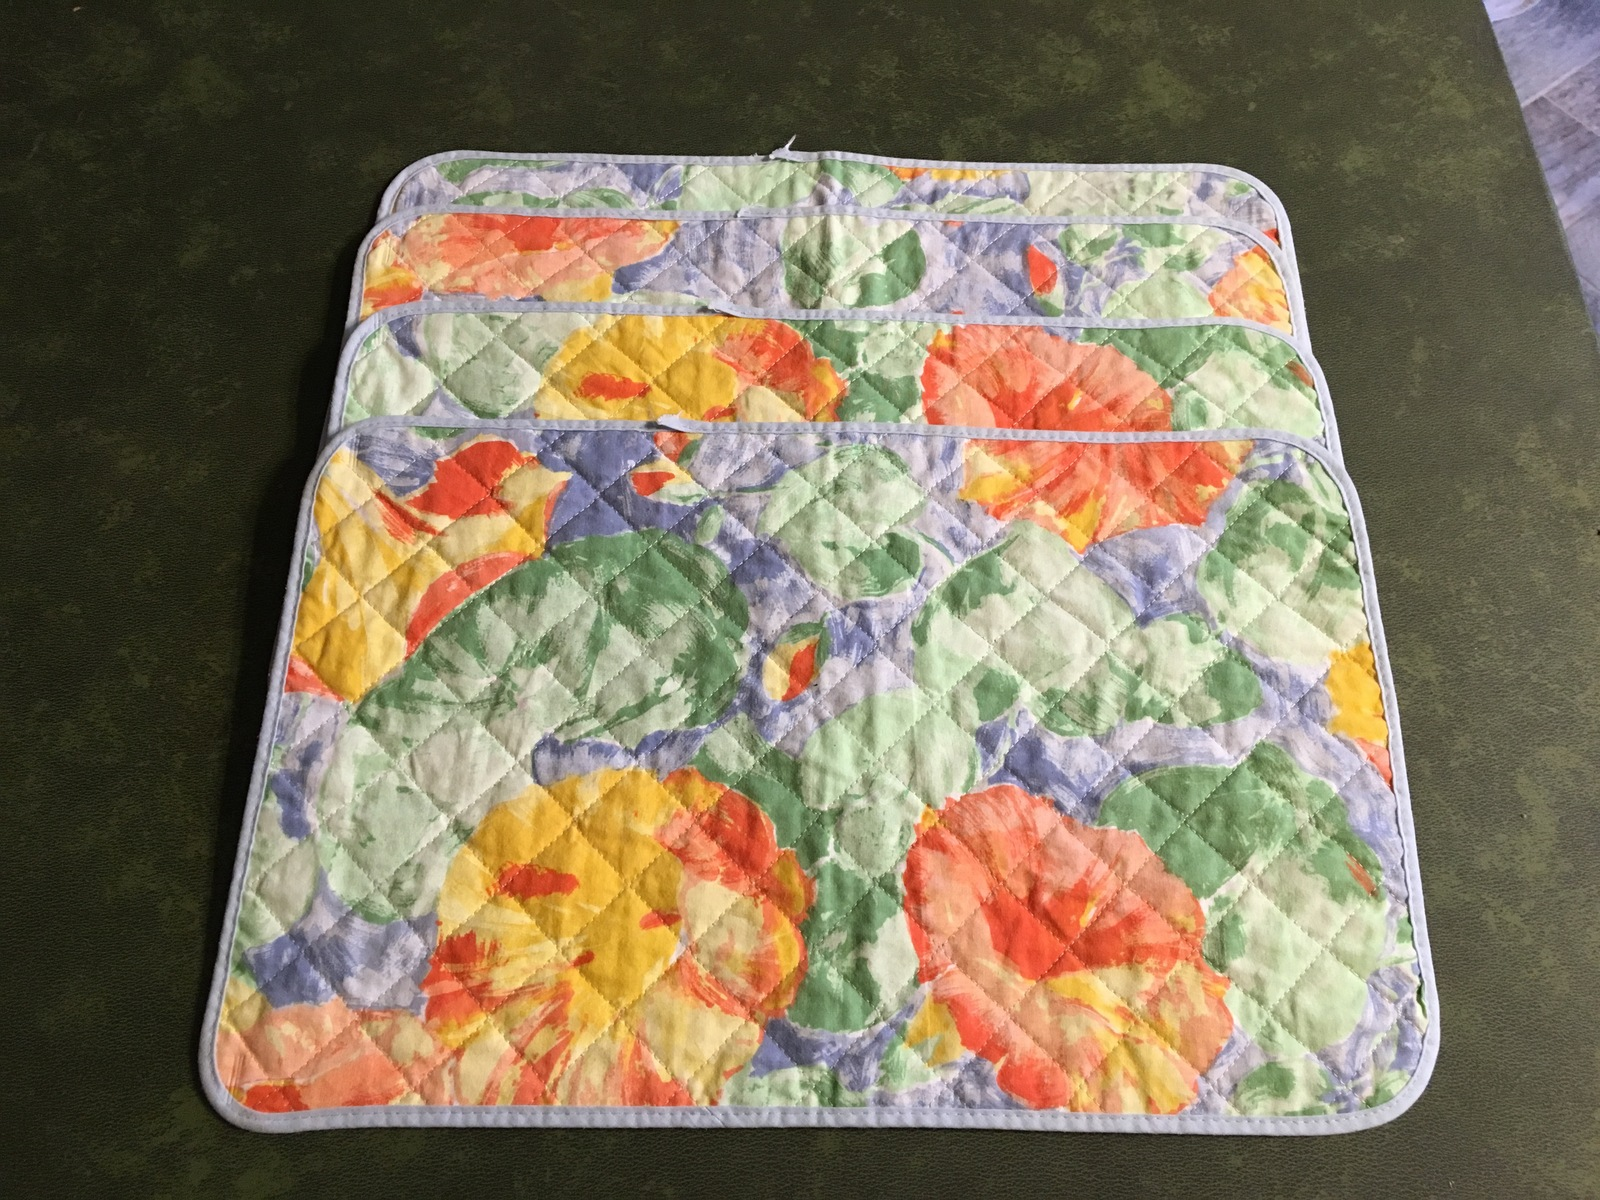 1990s IKEA Blue Monet Style Pastel Quilted Cotton Placemats (set of 4)